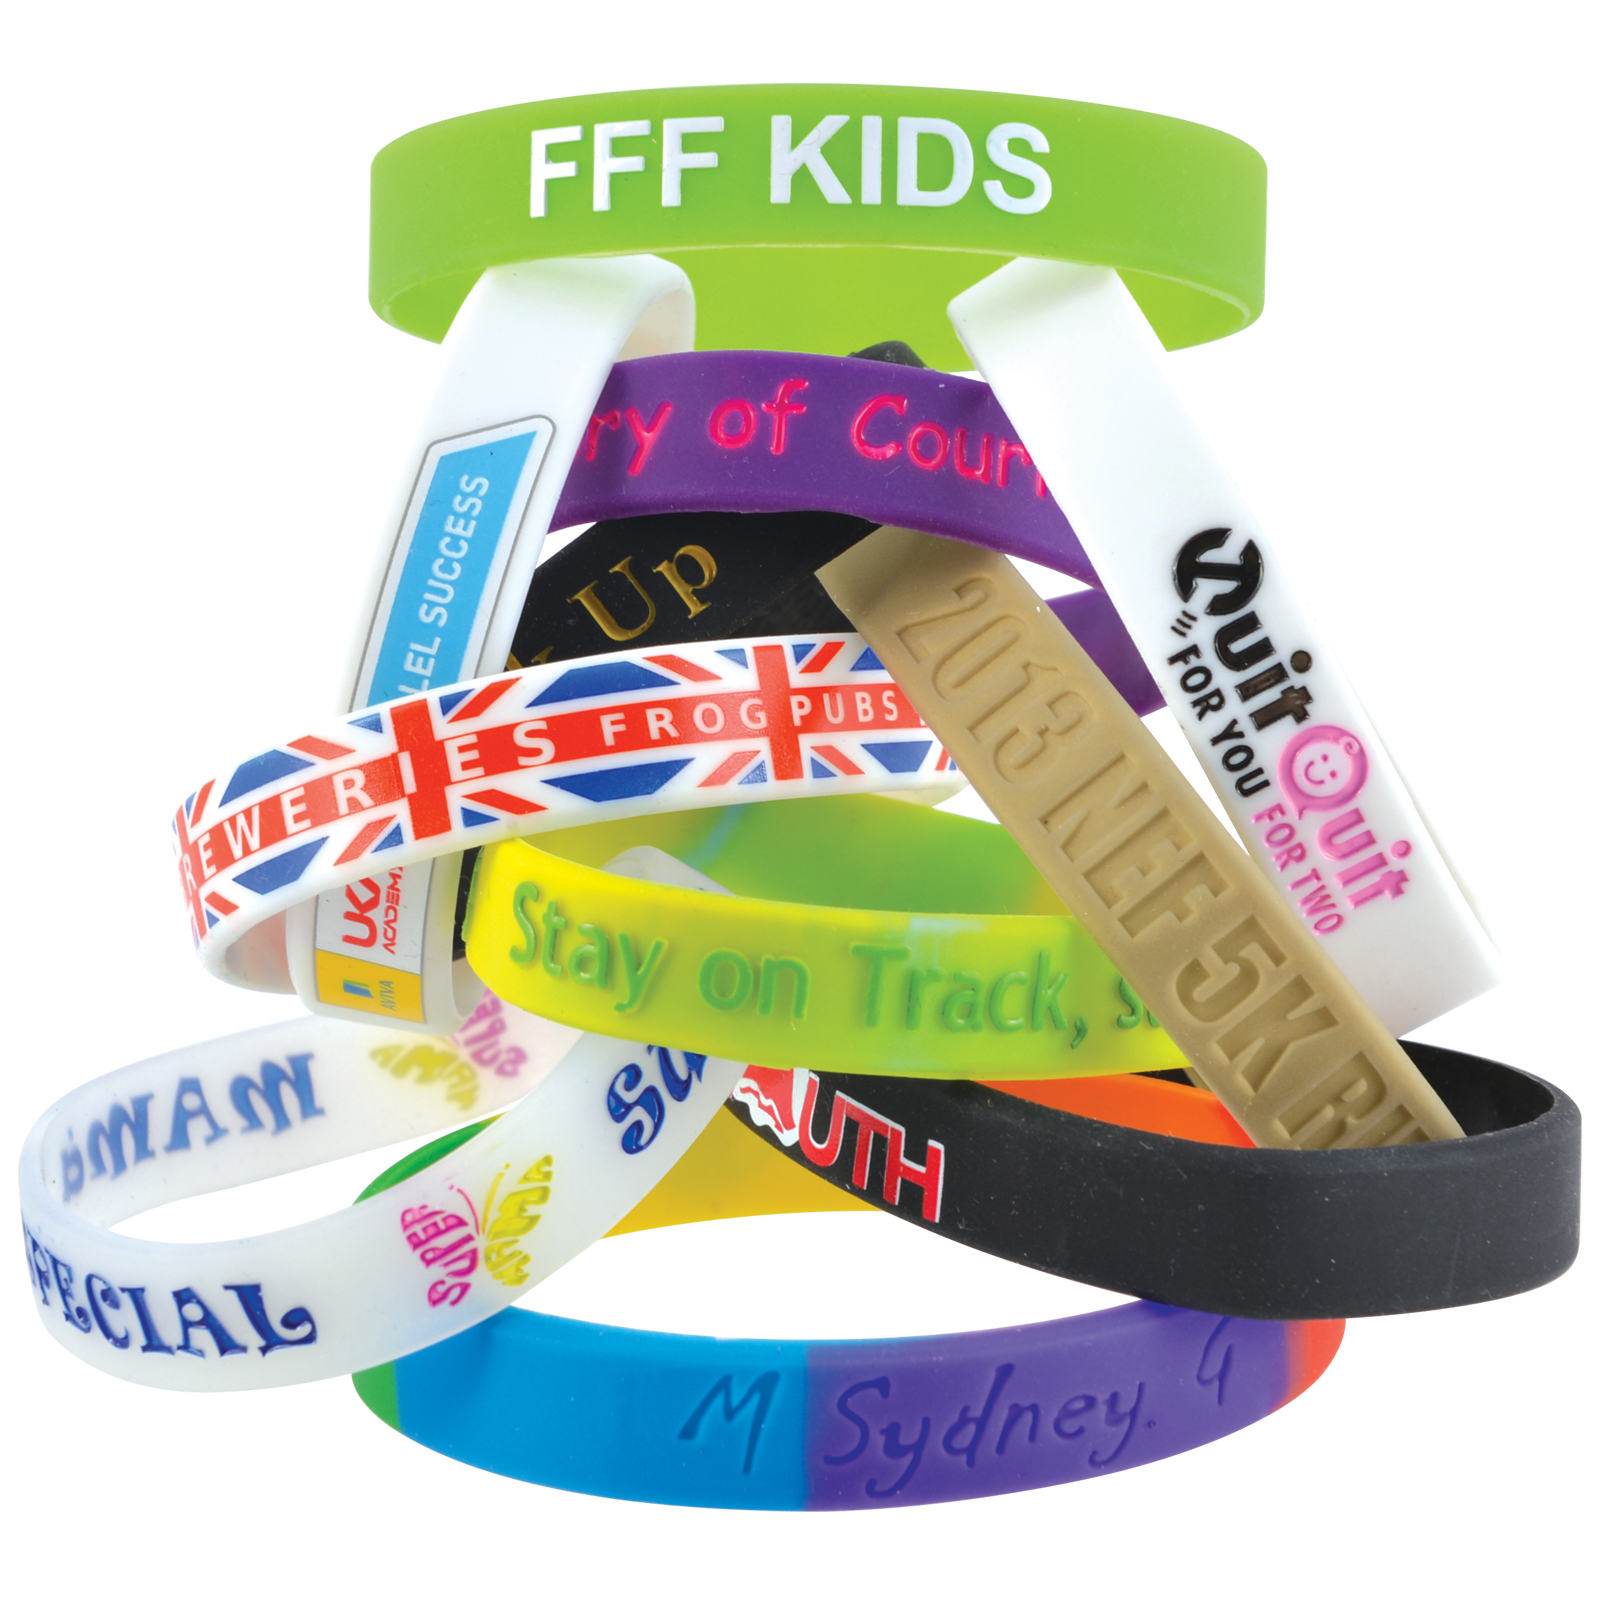 12mm Wide Silicone Wrist Band - Includes debossed logo, From $0.34